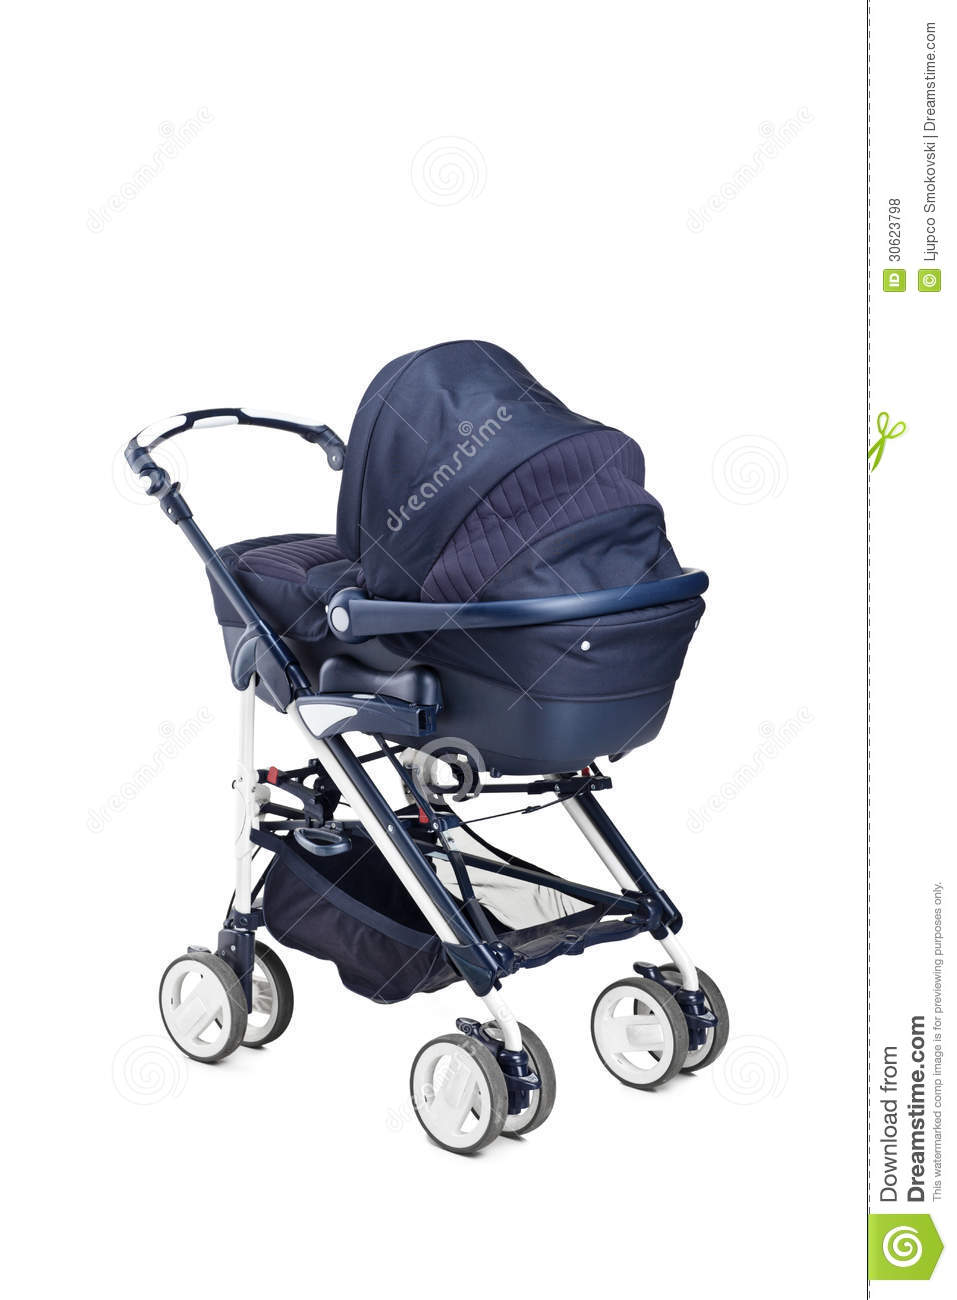 a modern baby stroller royalty free stock photos  image  - baby background isolated modern stroller